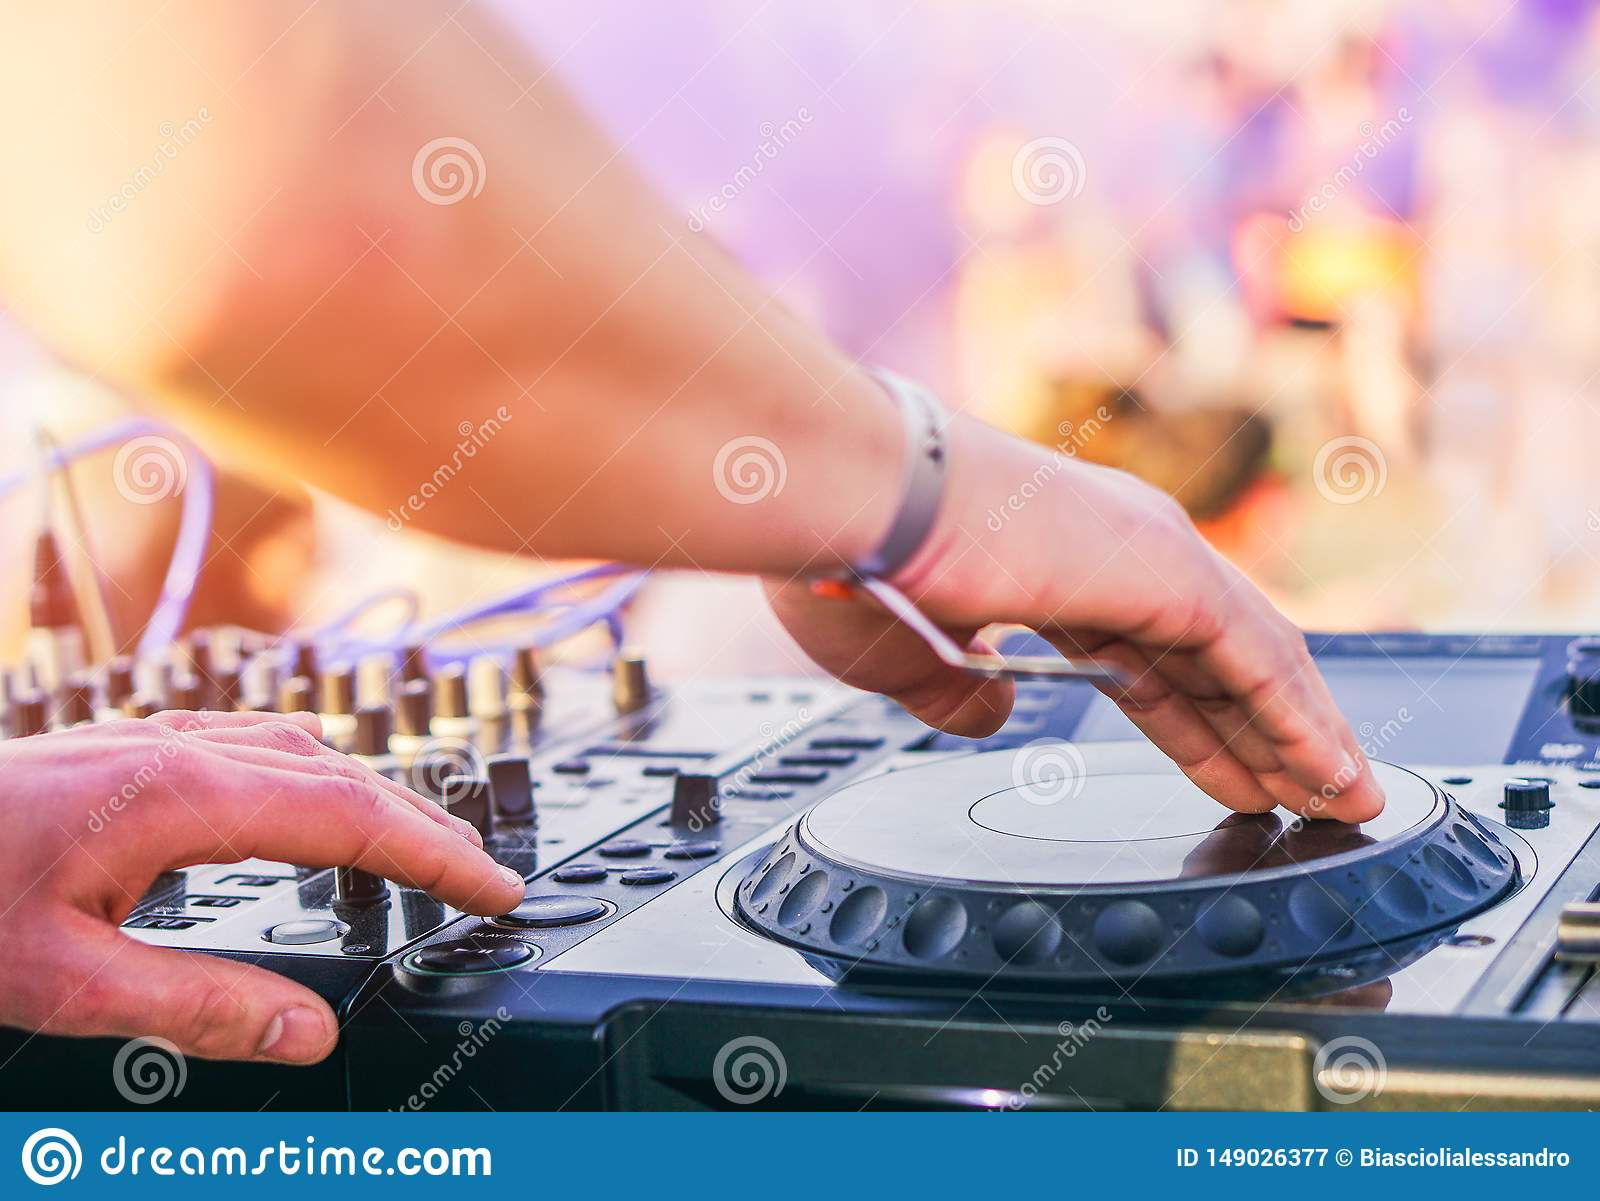 Dj mixing at beach party festival with people dancing in the background - Deejay playing music mixer audio outdoor